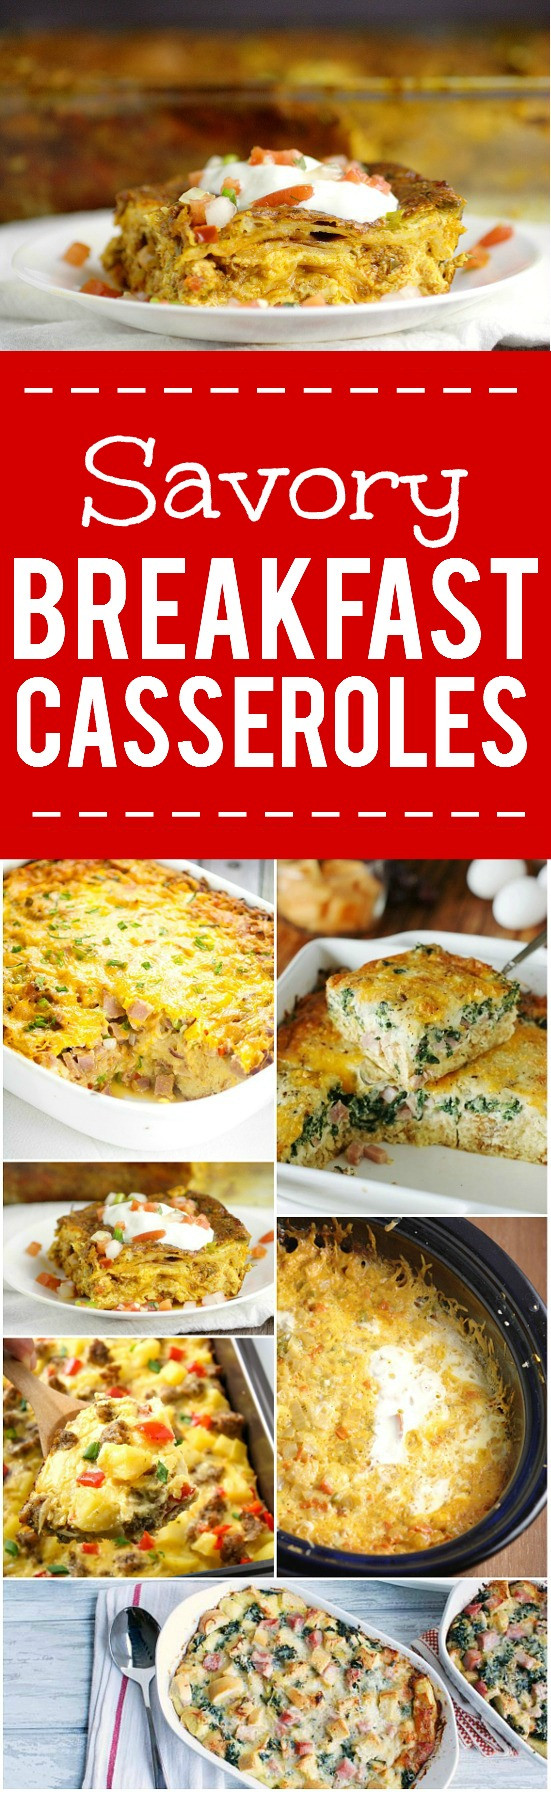 Savory Breakfast Casseroles  44 BEST Savory Breakfast Casserole Recipes